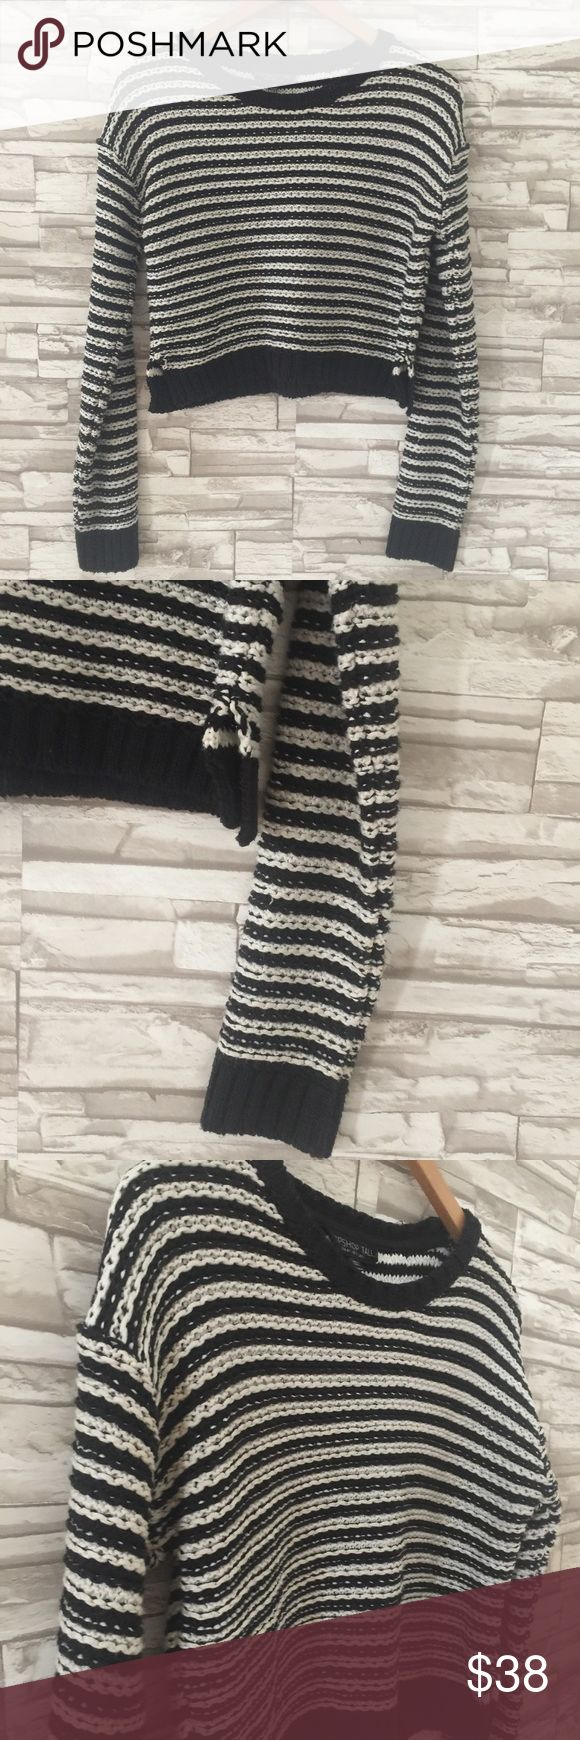 Topshop Tall Heavy Knit Cropped Sweater Topshop Tall Heavy Knit Cropped Sweater  Black and white woven Knit  Great pre-loved condition  Approx measurements: Length: 16.5in Pit to pit: 21in Arms: 22.5in Acrylic  No trades/No lowballing Topshop Sweaters